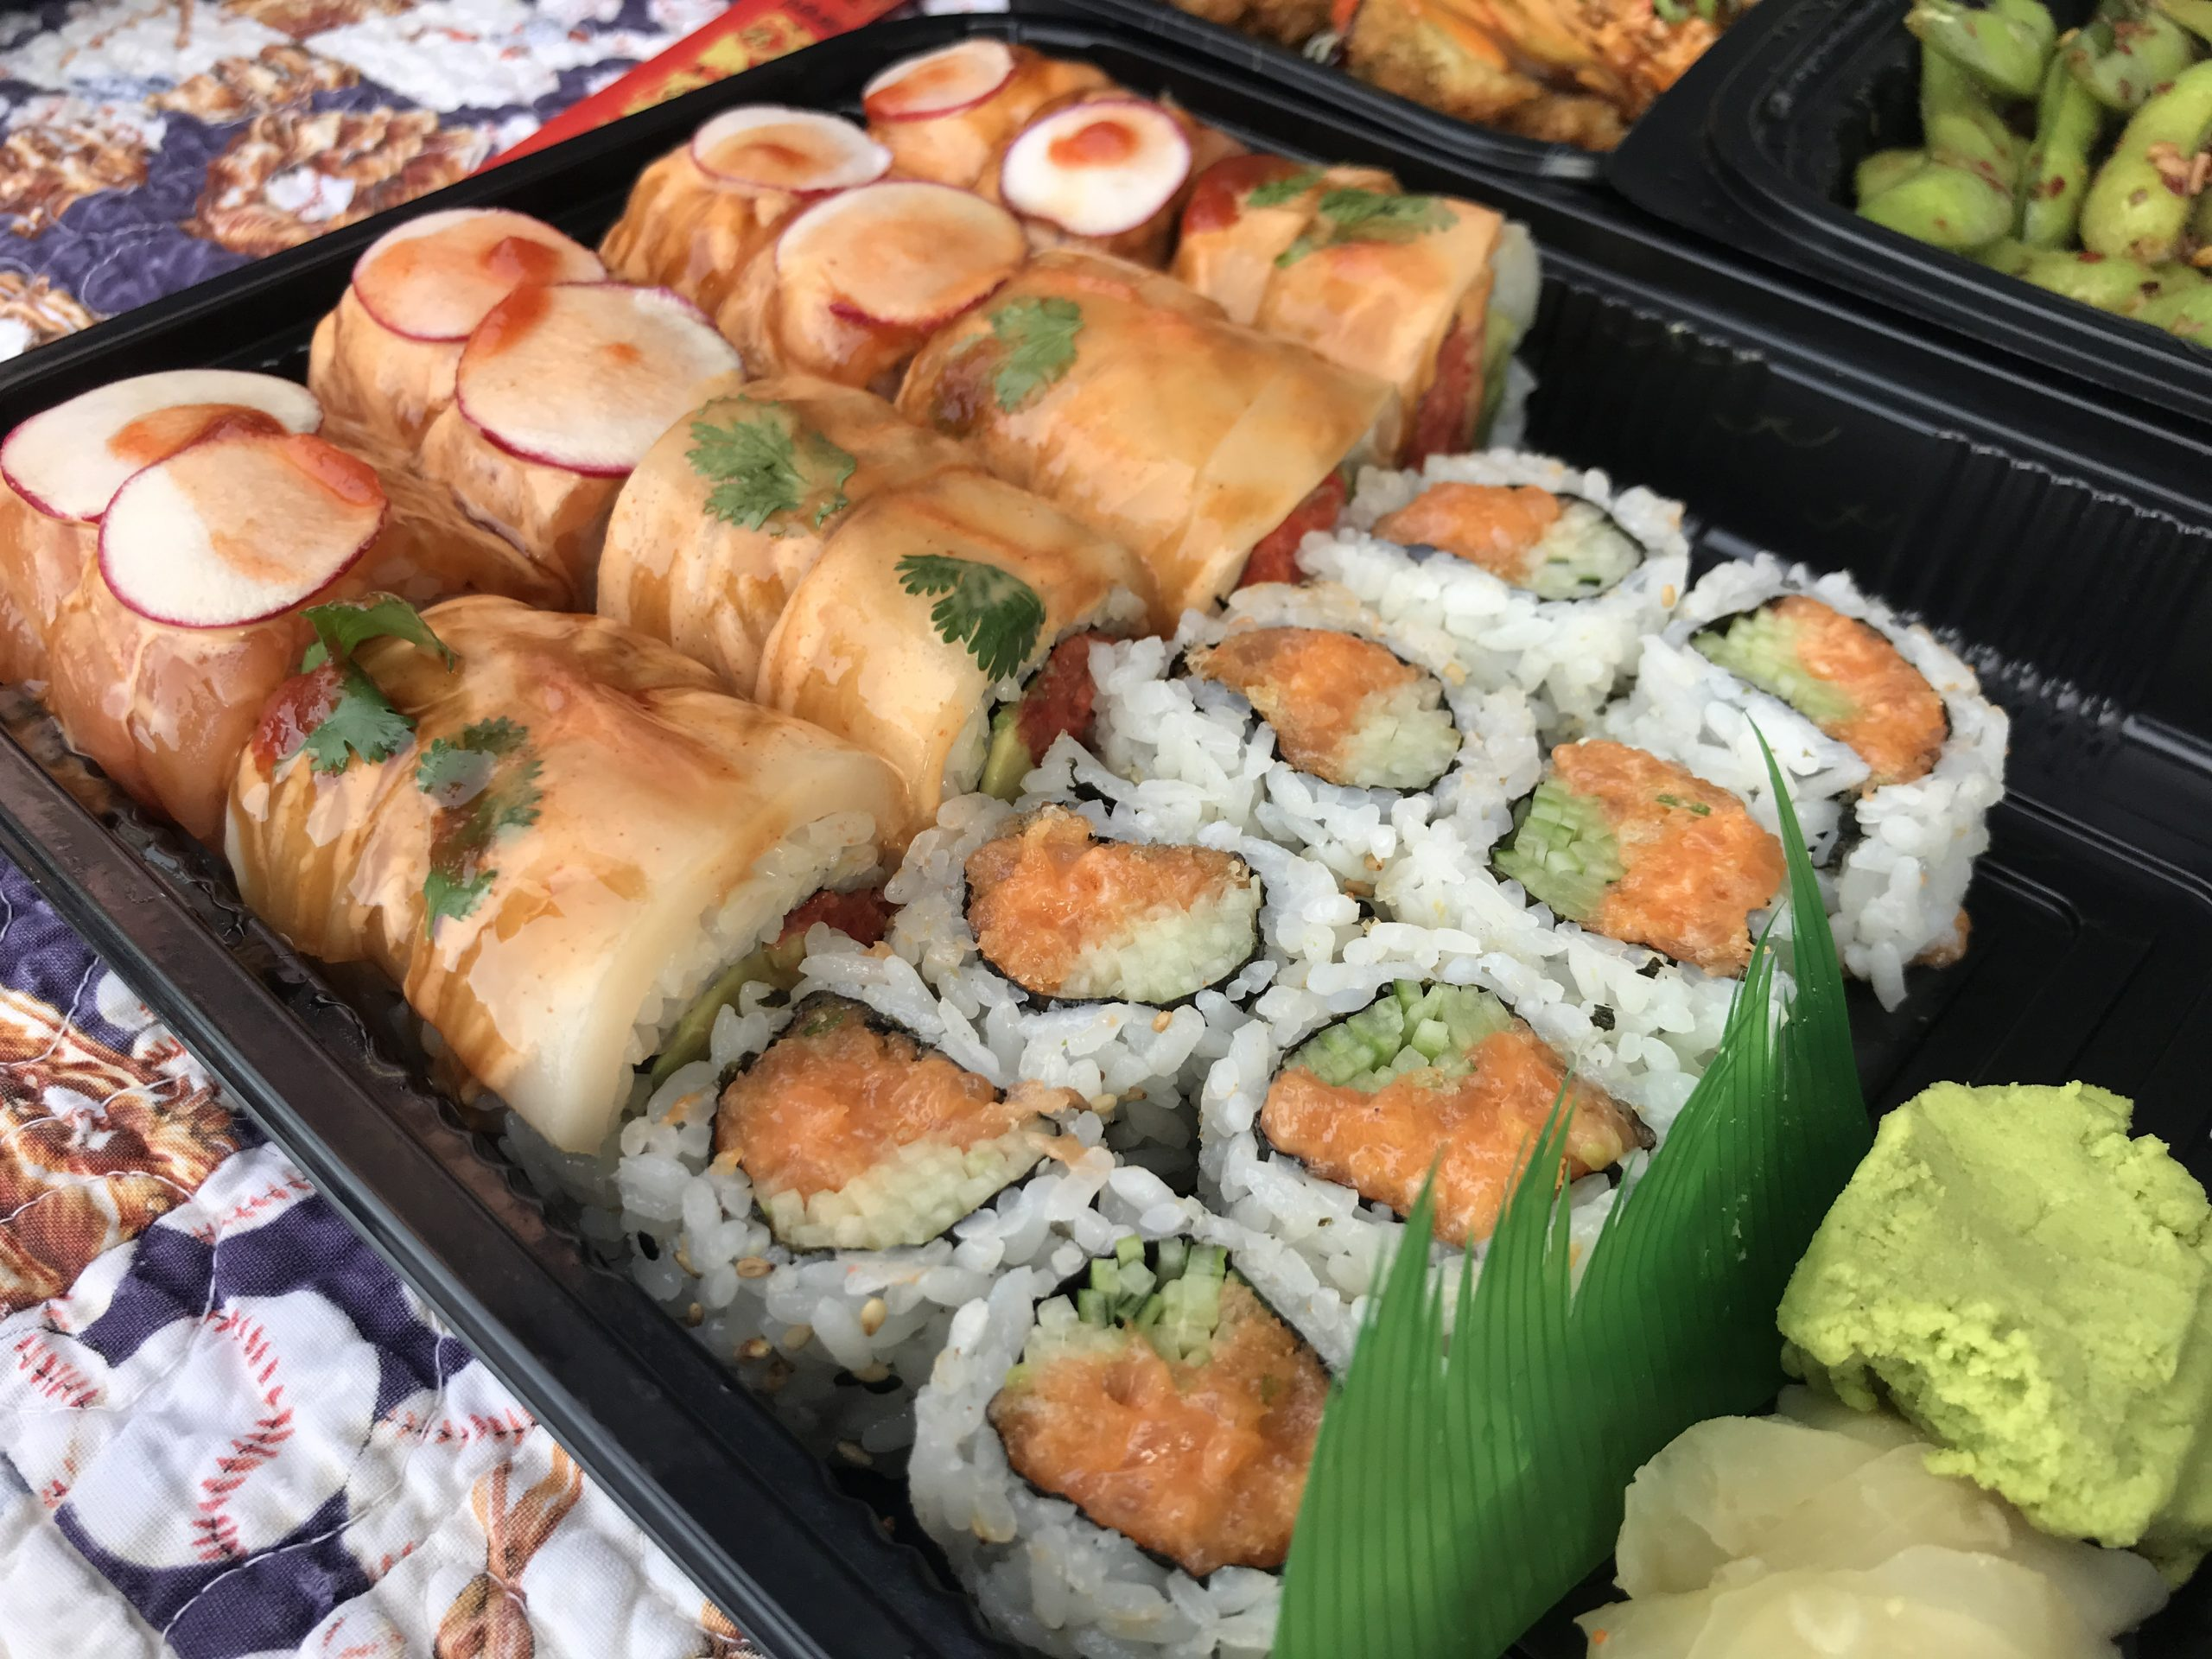 A Quick Date Night Sushi Run From Shiki Sushi in Kennewick – May 26 2020